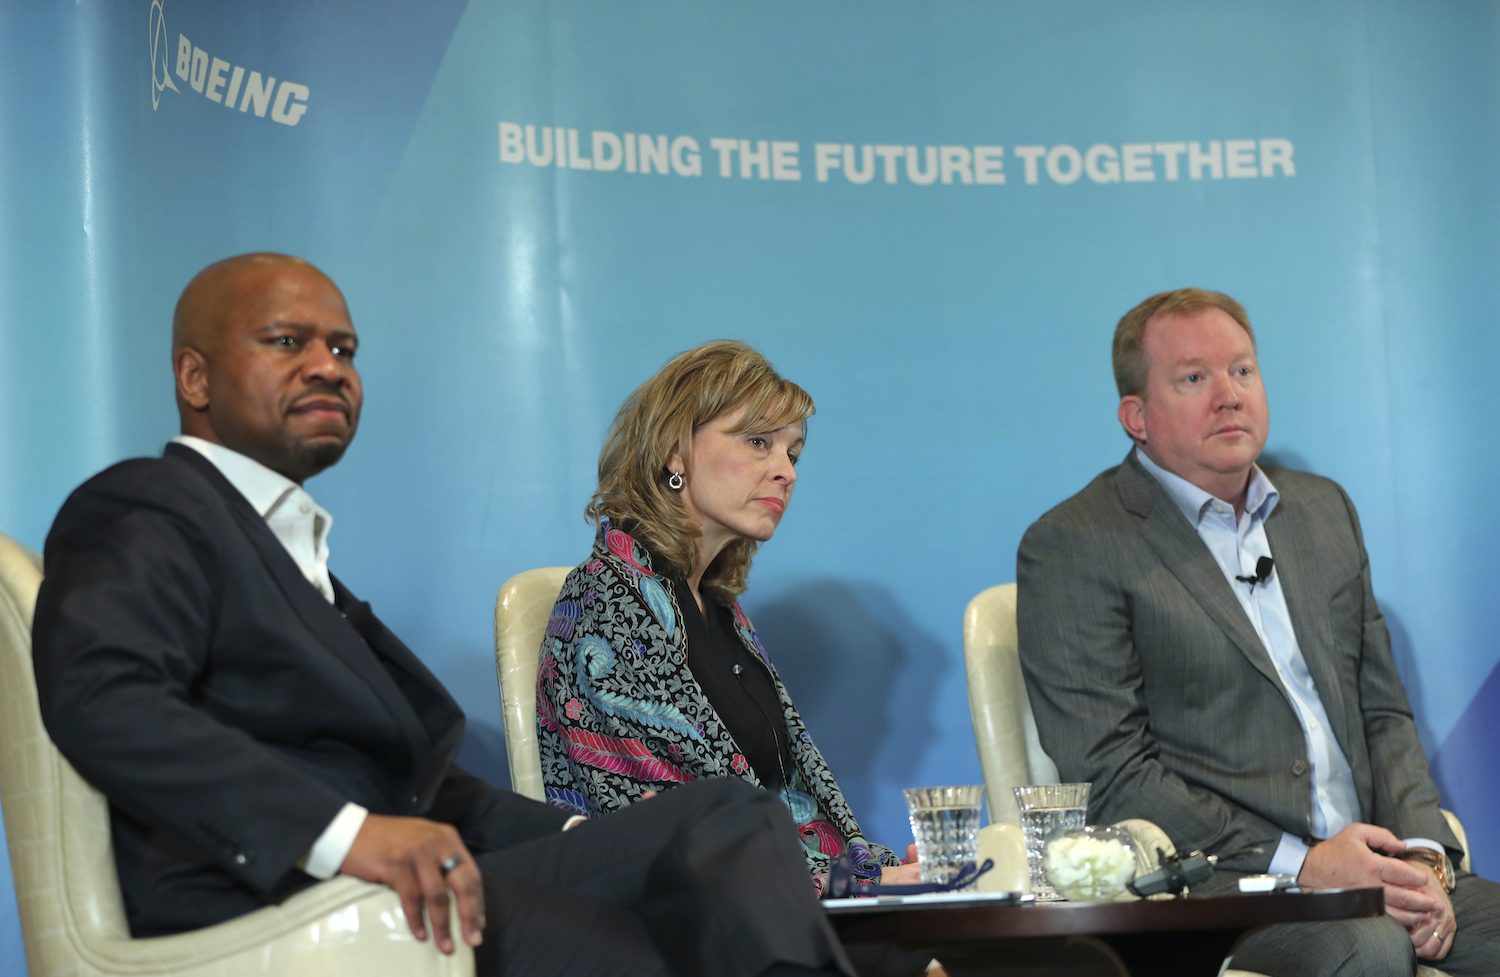 Stan Deal (right), president and CEO of Boeing Commercial Airplanes, listens to a question at a news conference on the eve of the Dubai Air Show on Saturday. Looking on are Ted Colbert, president and CEO of Boeing Global Services, and Leanne Caret, president and CEO of Boeing Defence, Space & Security. (AP Photo)